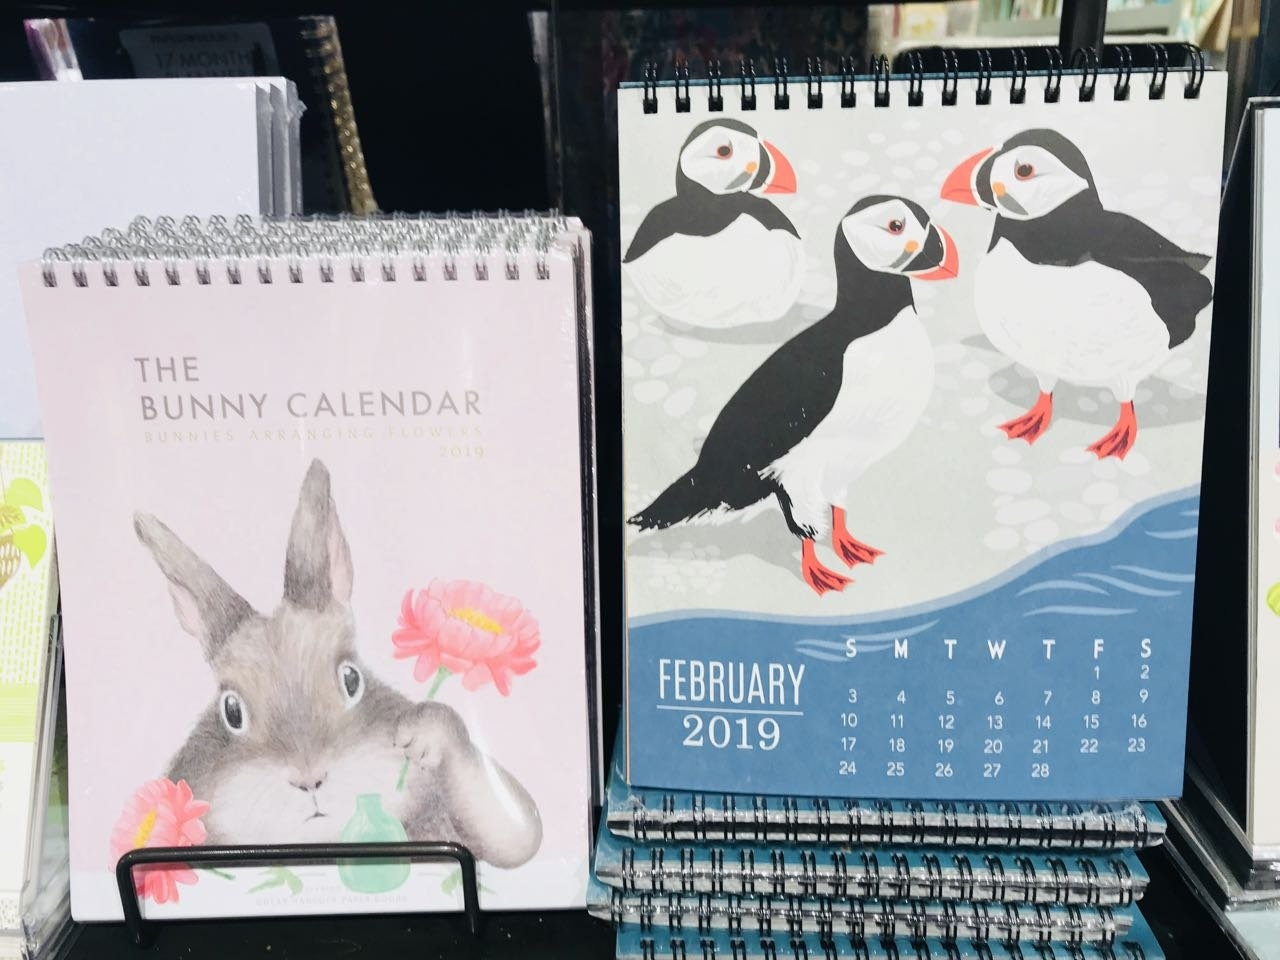 2019 Calendars On Sale, And Selling Calendar 2019 For Sale